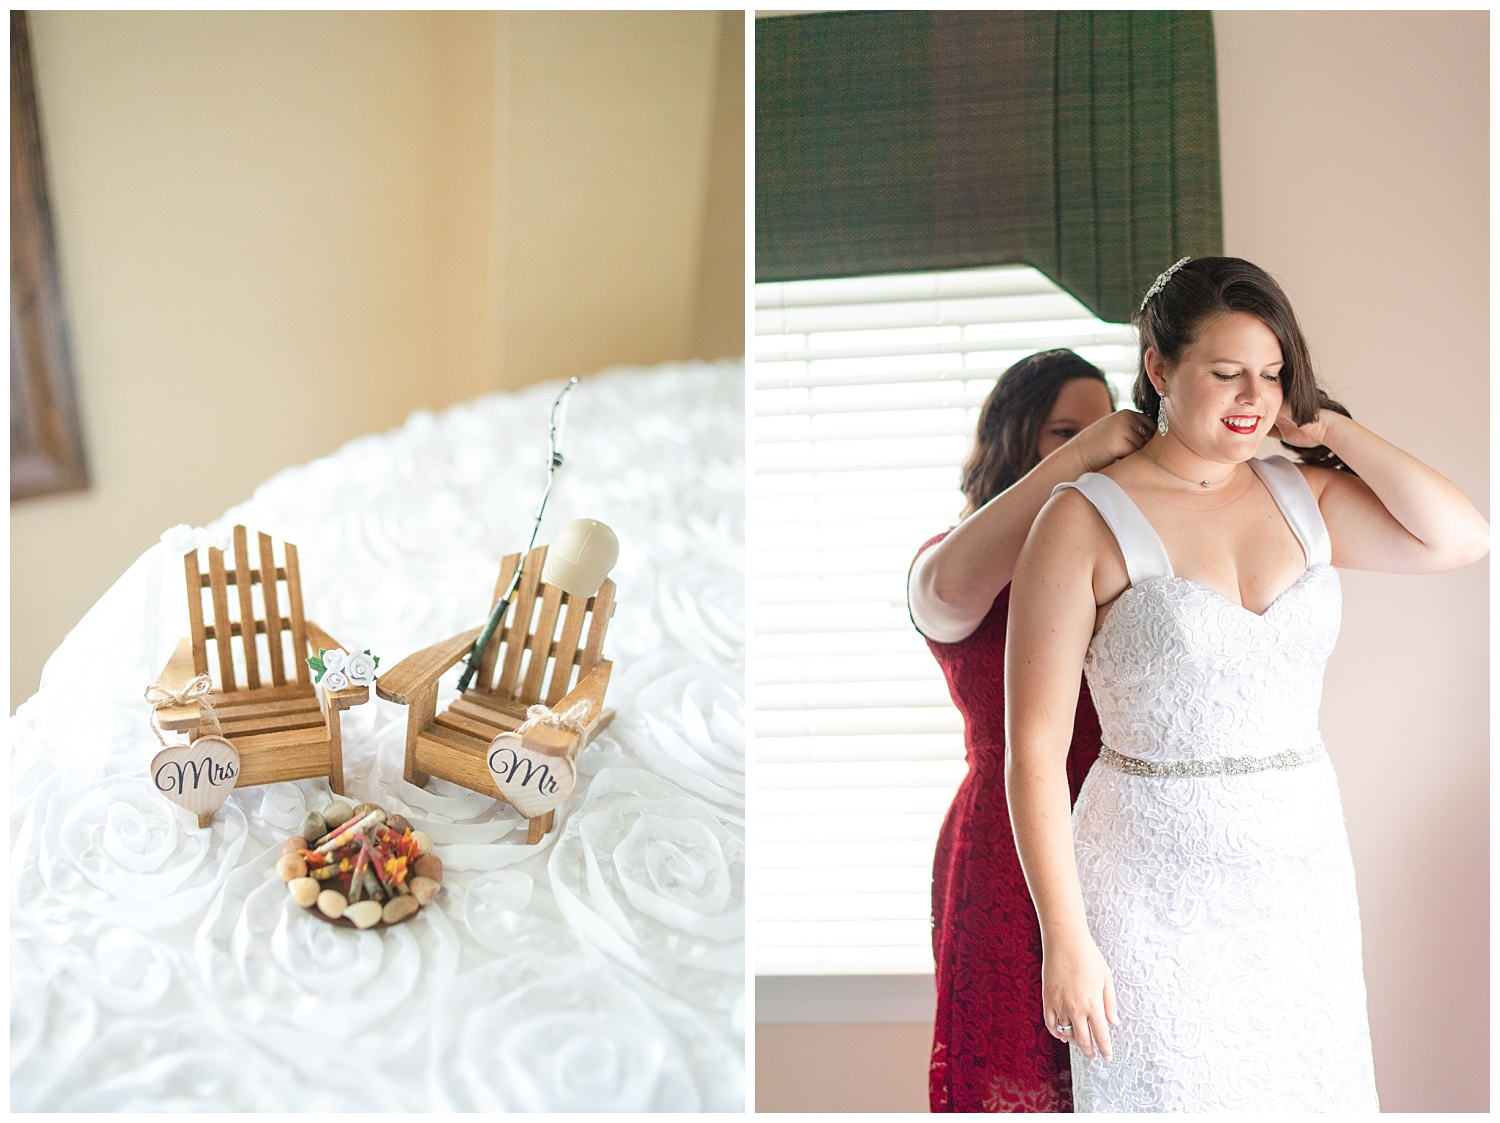 MJMP Richmond Wedding Photographer Indian Creek Yacht Country Club Wedding Photo_0021.jpg